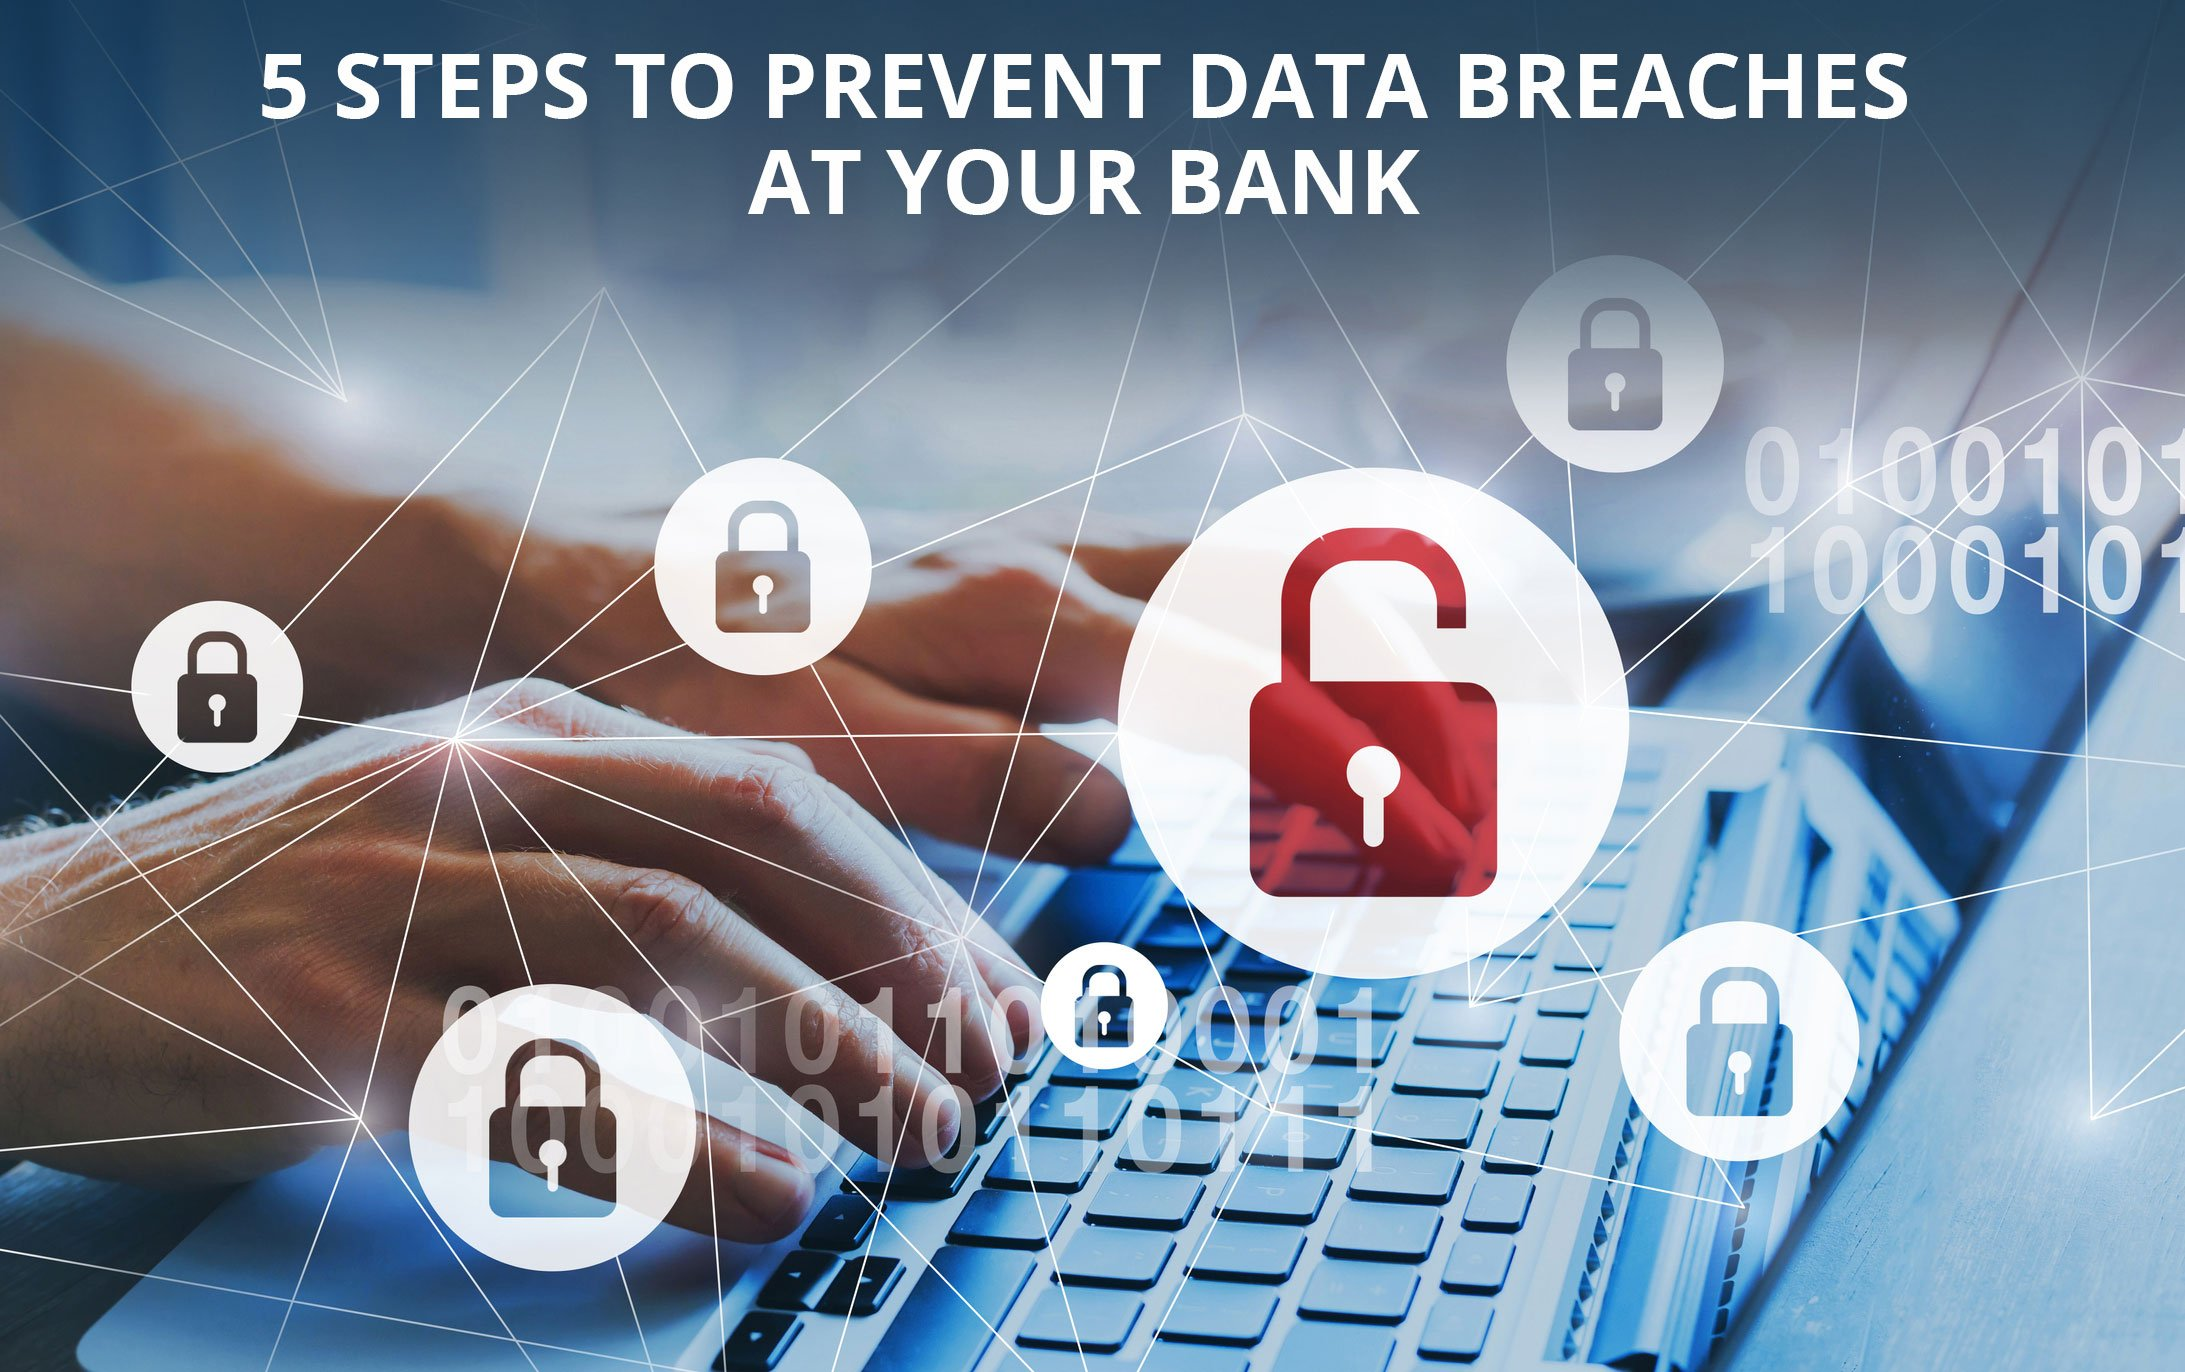 5 Steps To Prevent Data Breaches At Your Bank